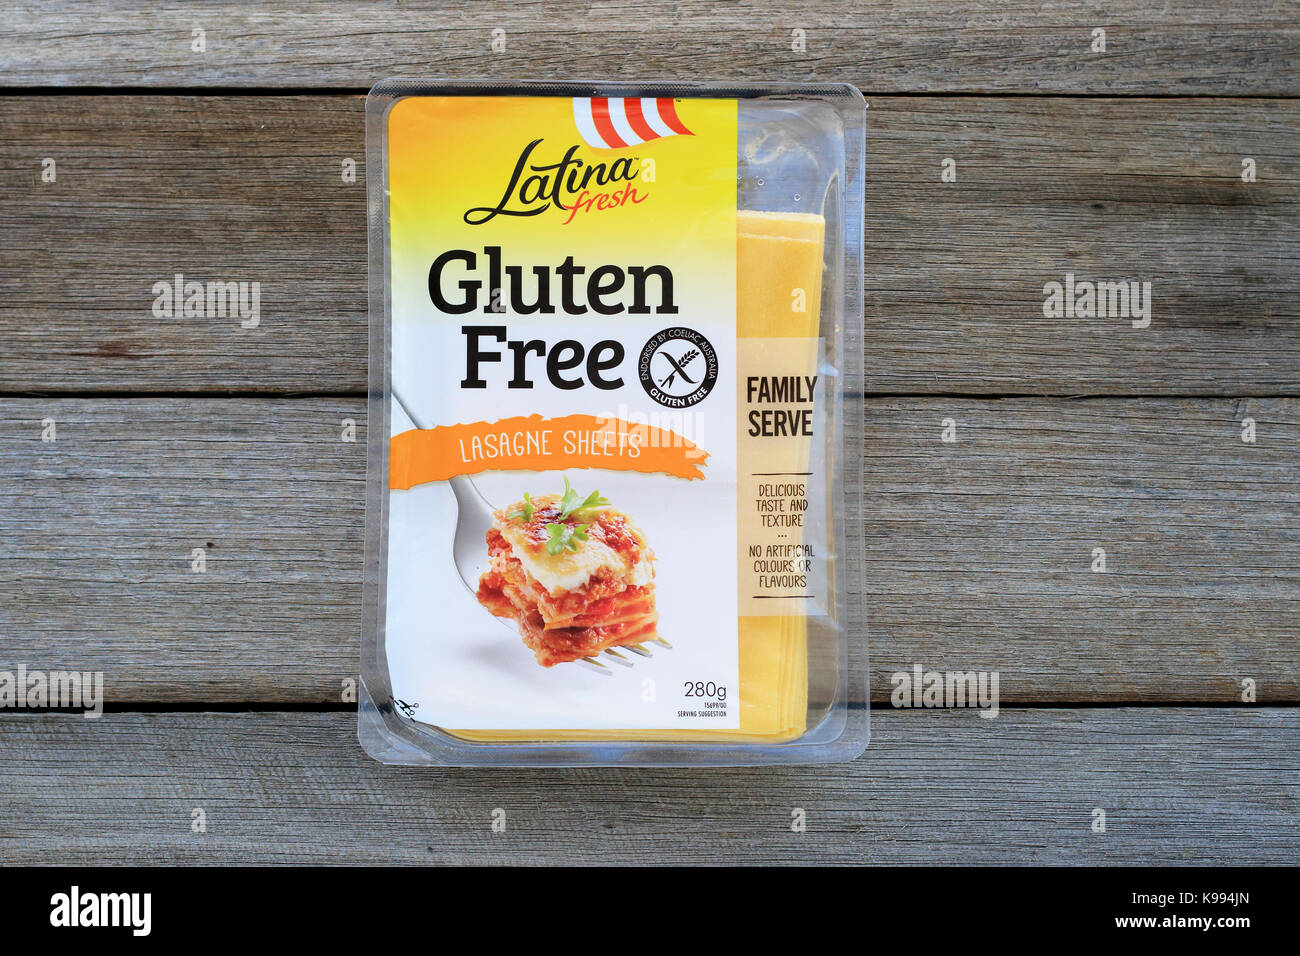 Latina Fresh Gluten Free Lasagna Sheets isolated against wooden background - Stock Image